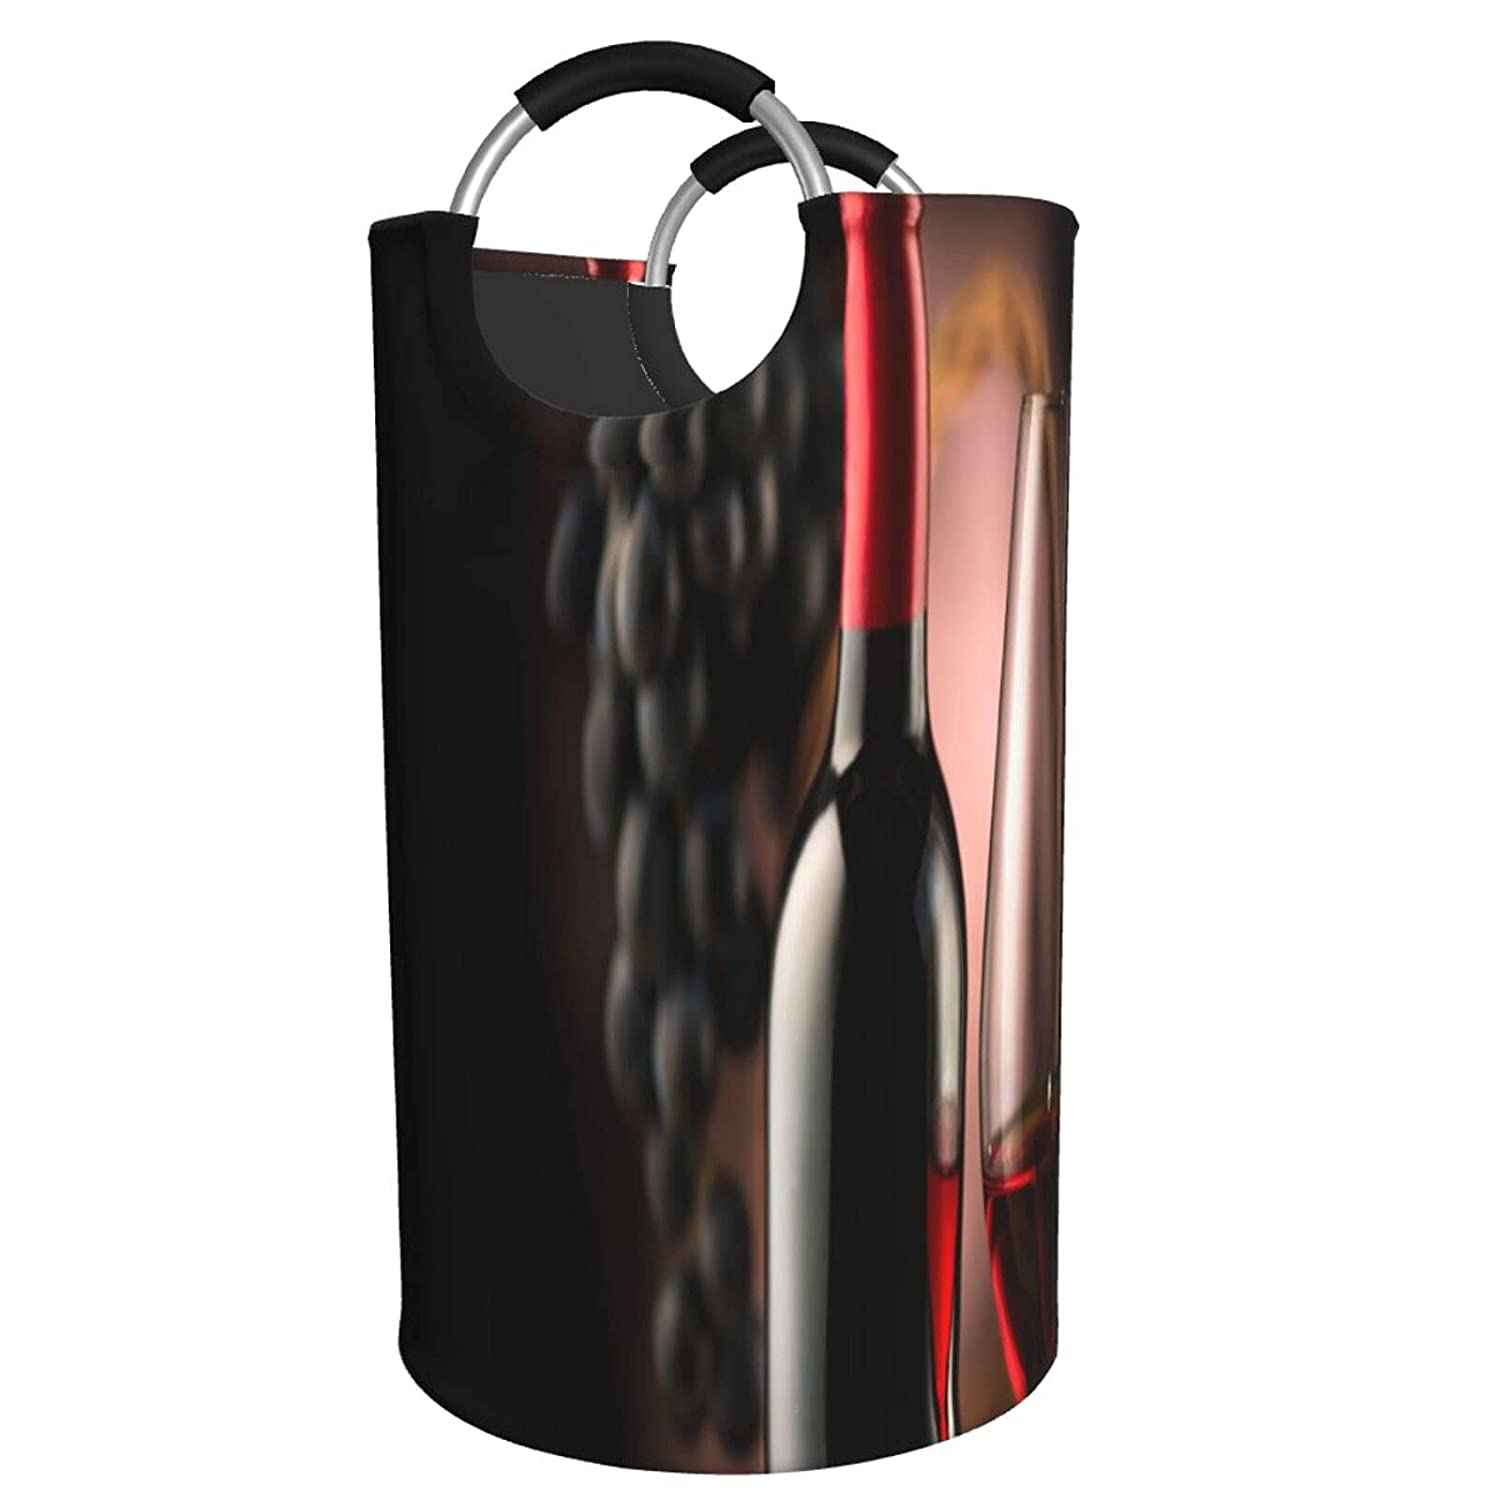 ZXZNC 82L Large Laundry Max 68% OFF Basket Red G Glass Wine Bottle With Free Shipping New Ripe